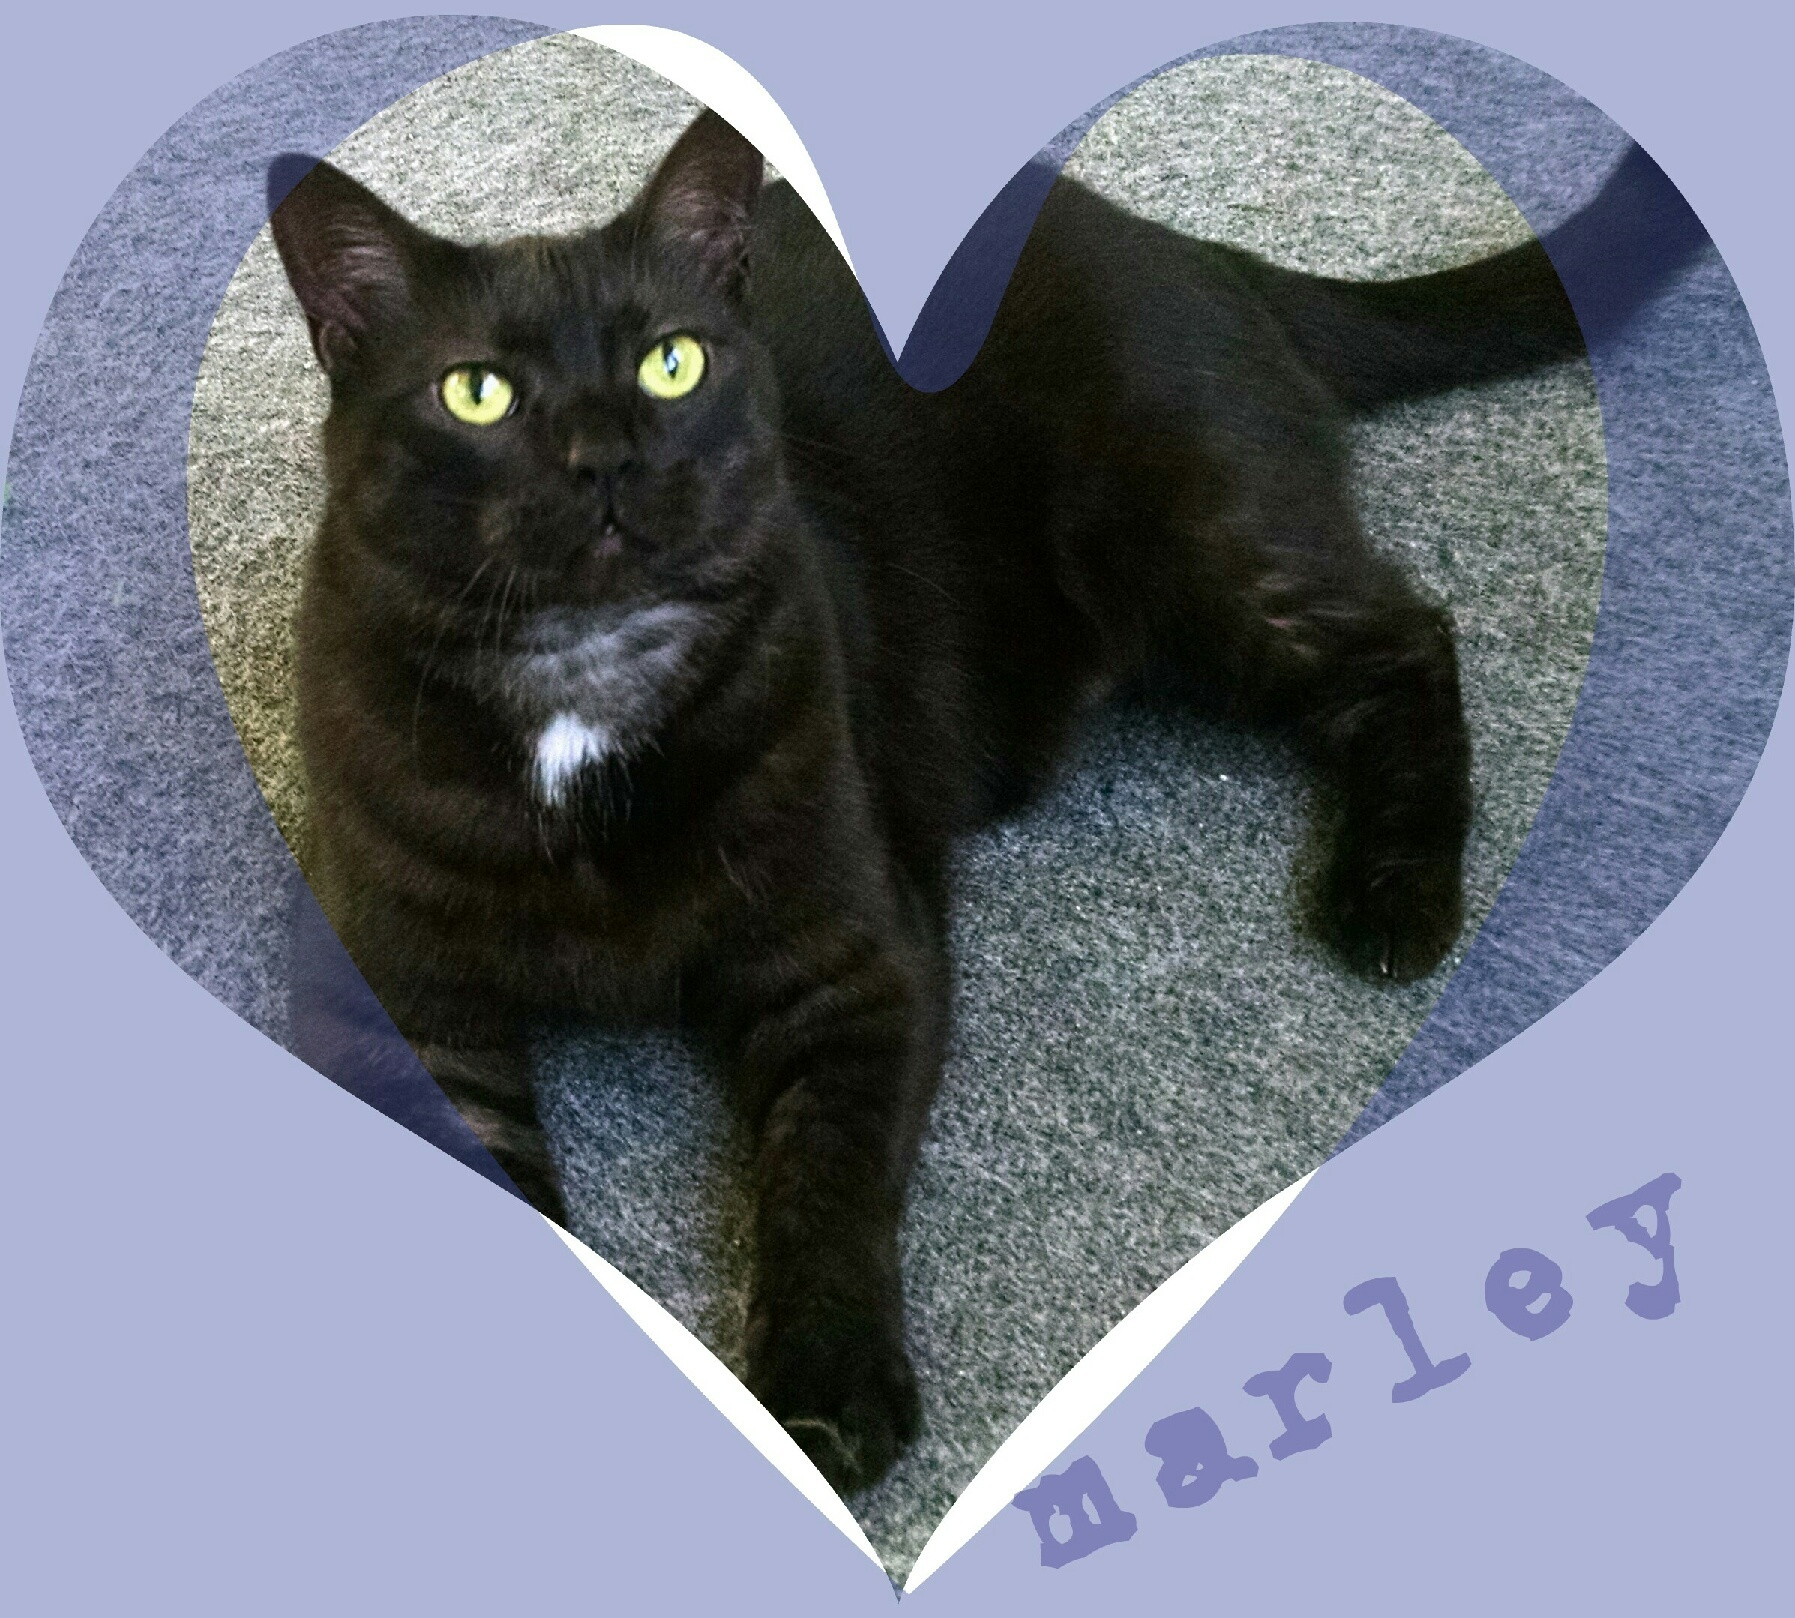 Marley~ The Dream Cat